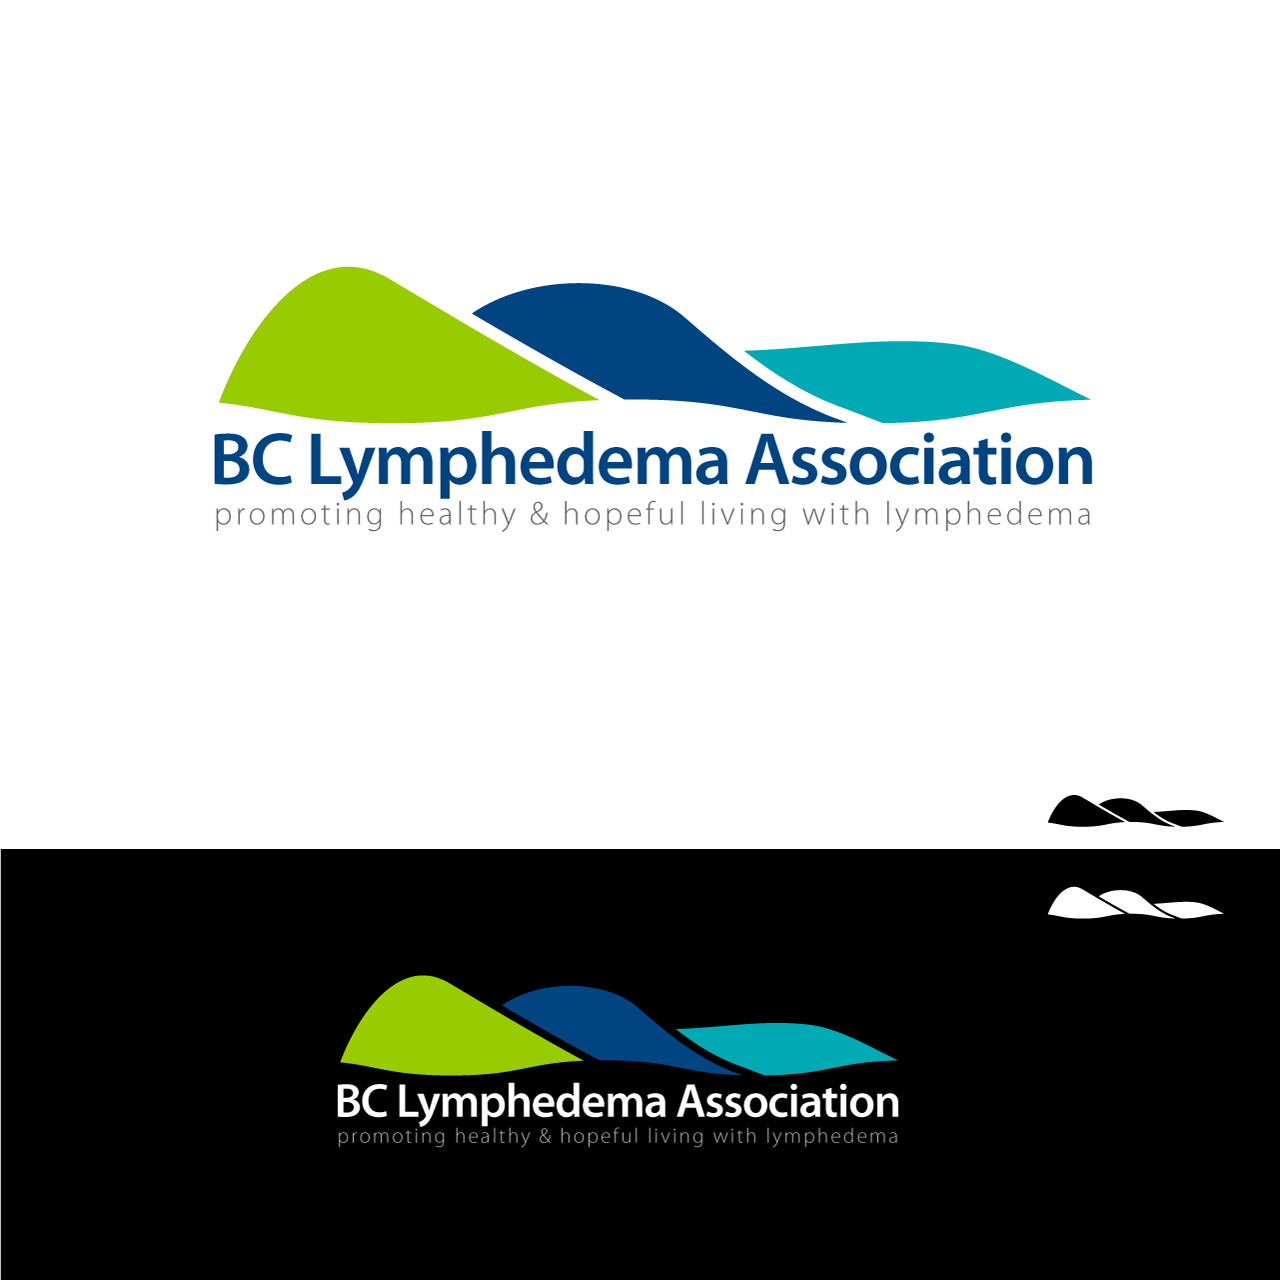 Logo Design by umxca - Entry No. 144 in the Logo Design Contest BC Lymphedema Association.